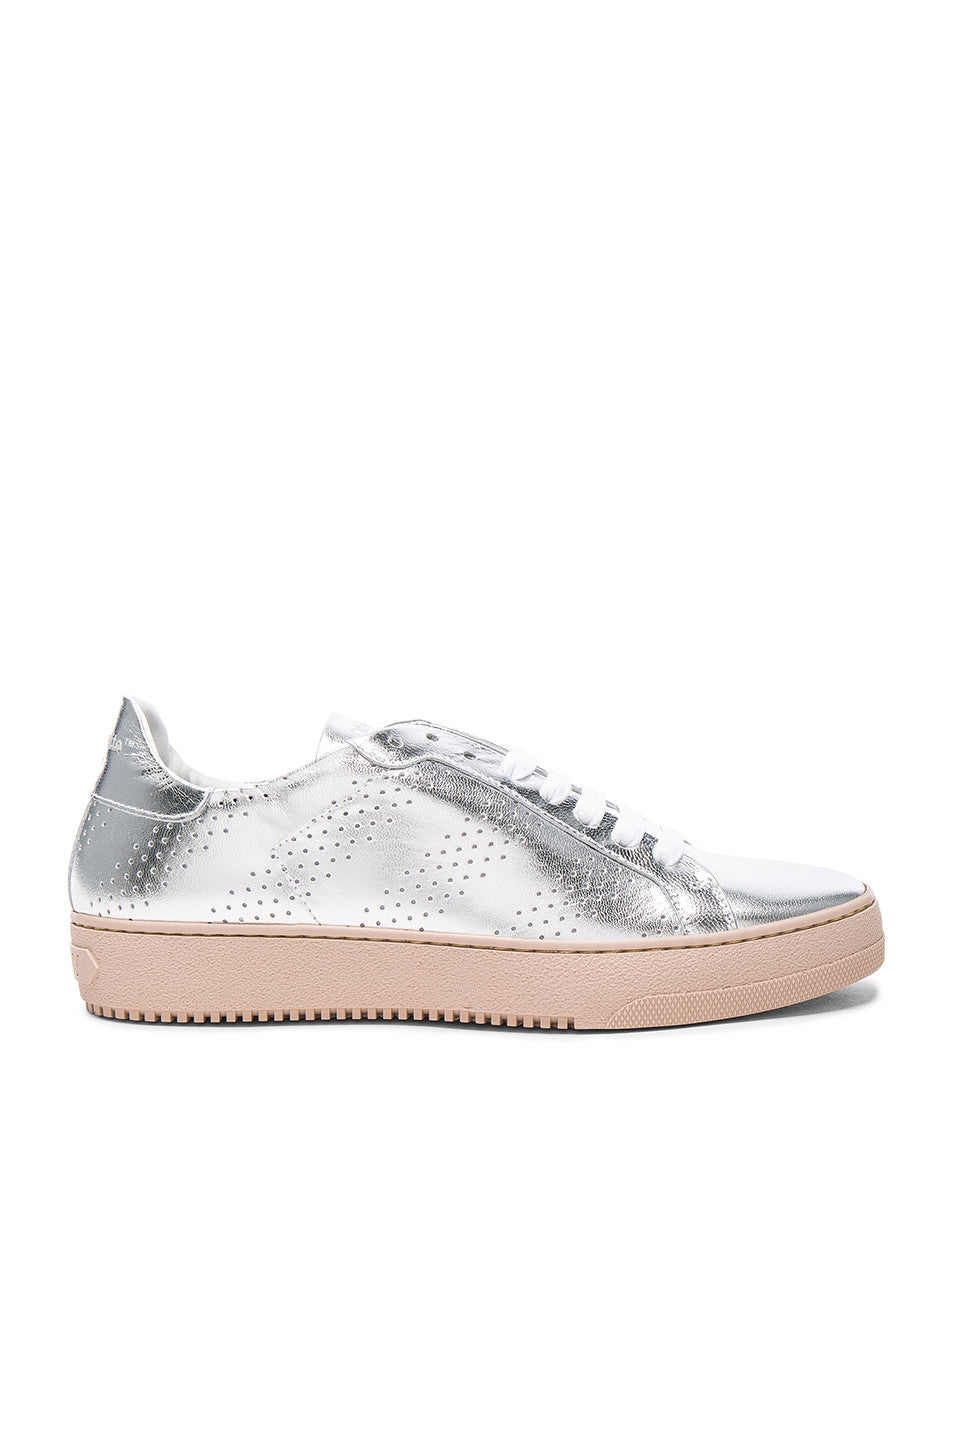 OFF-WHITE Perforated Leather Sneakers